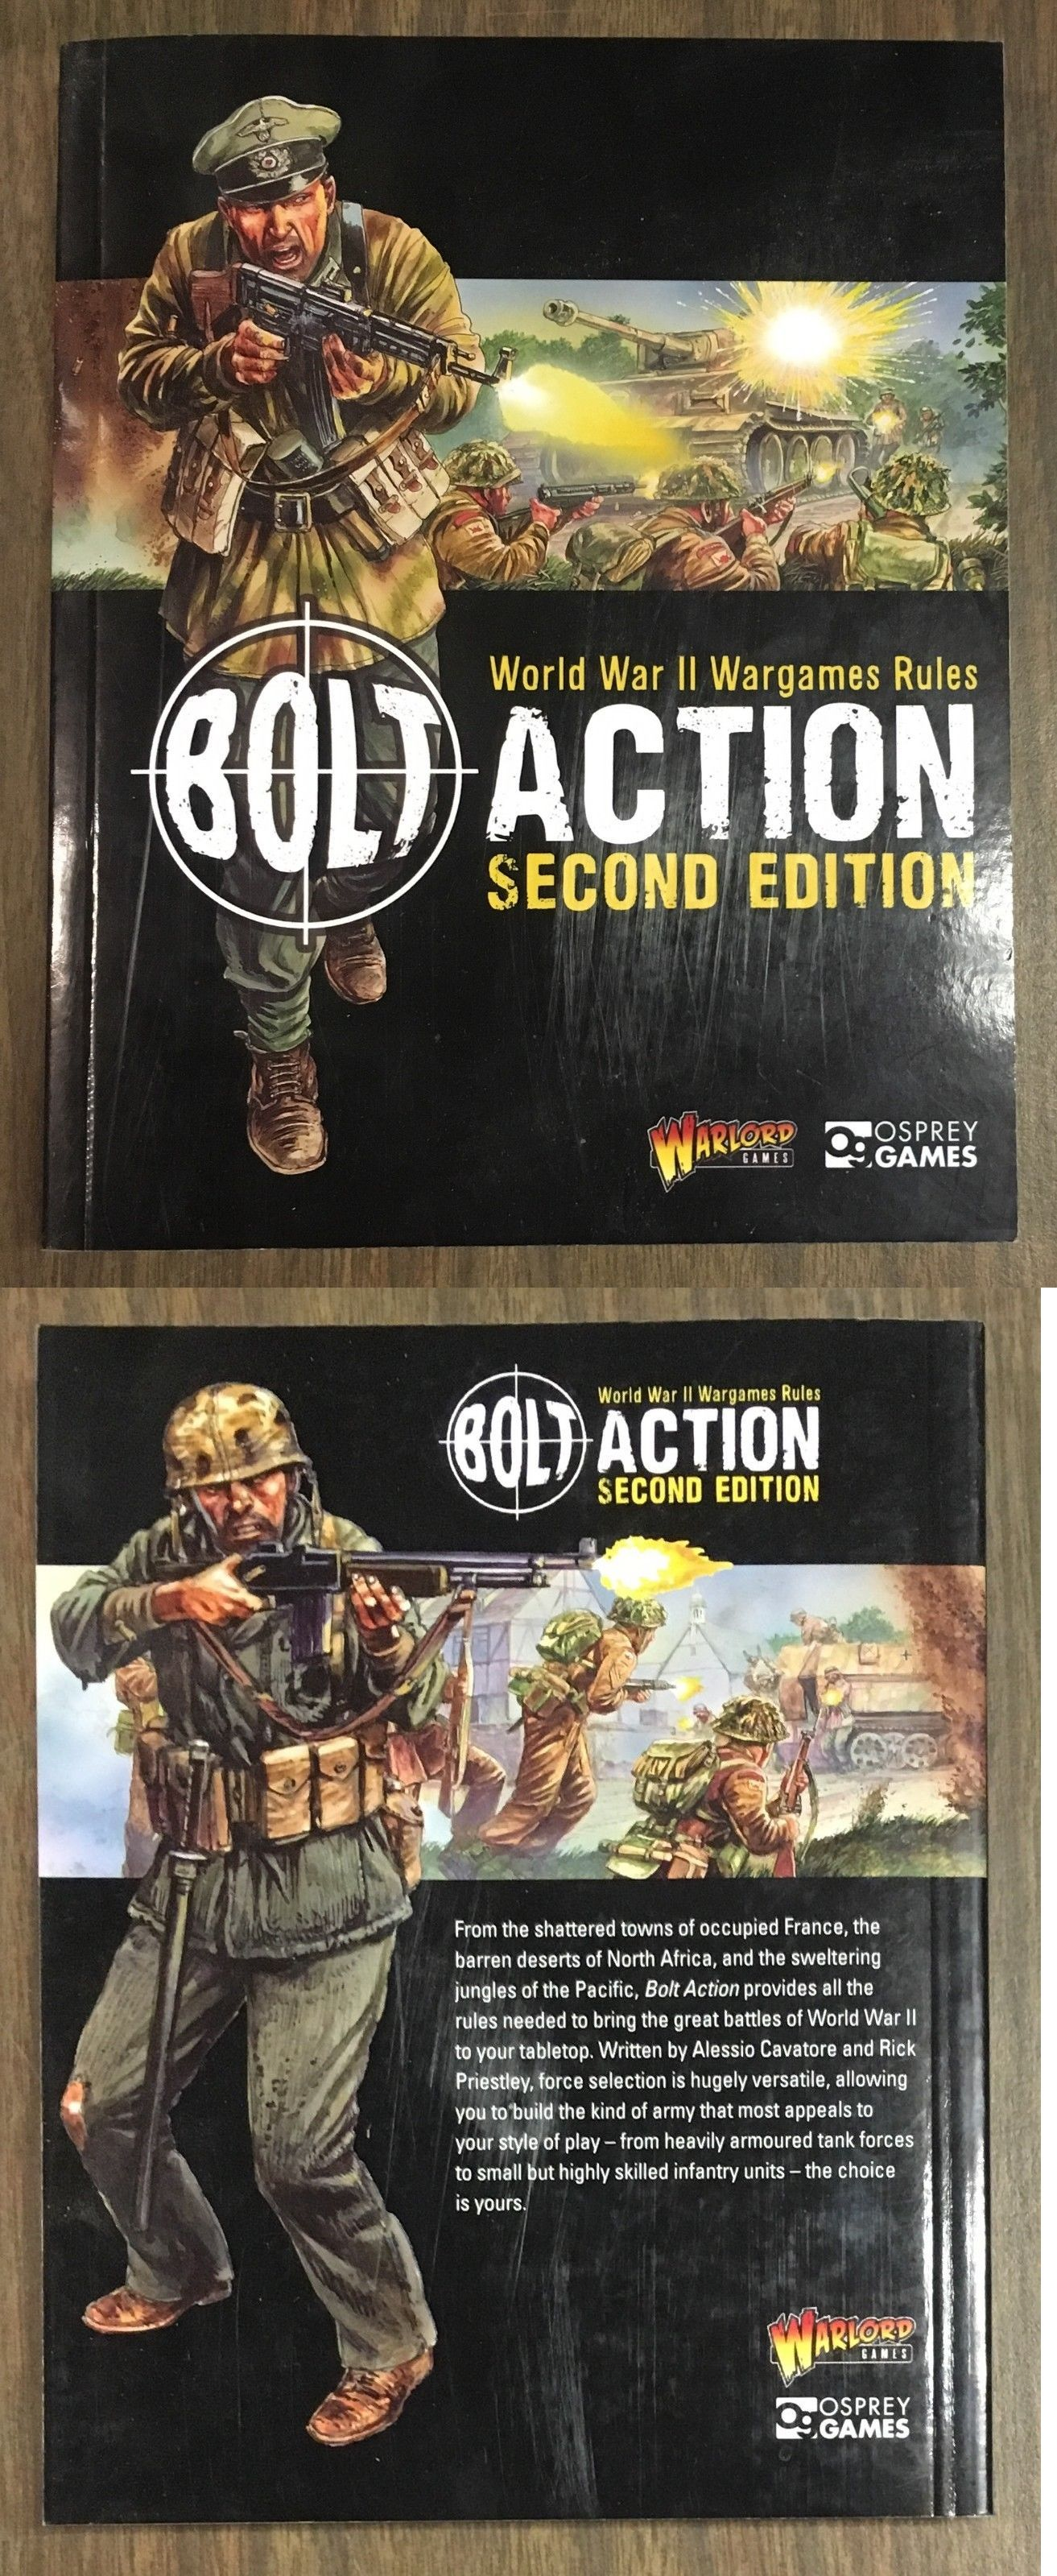 Other Miniatures and War Games 2537: Warlord Games Bolt Action Wwii